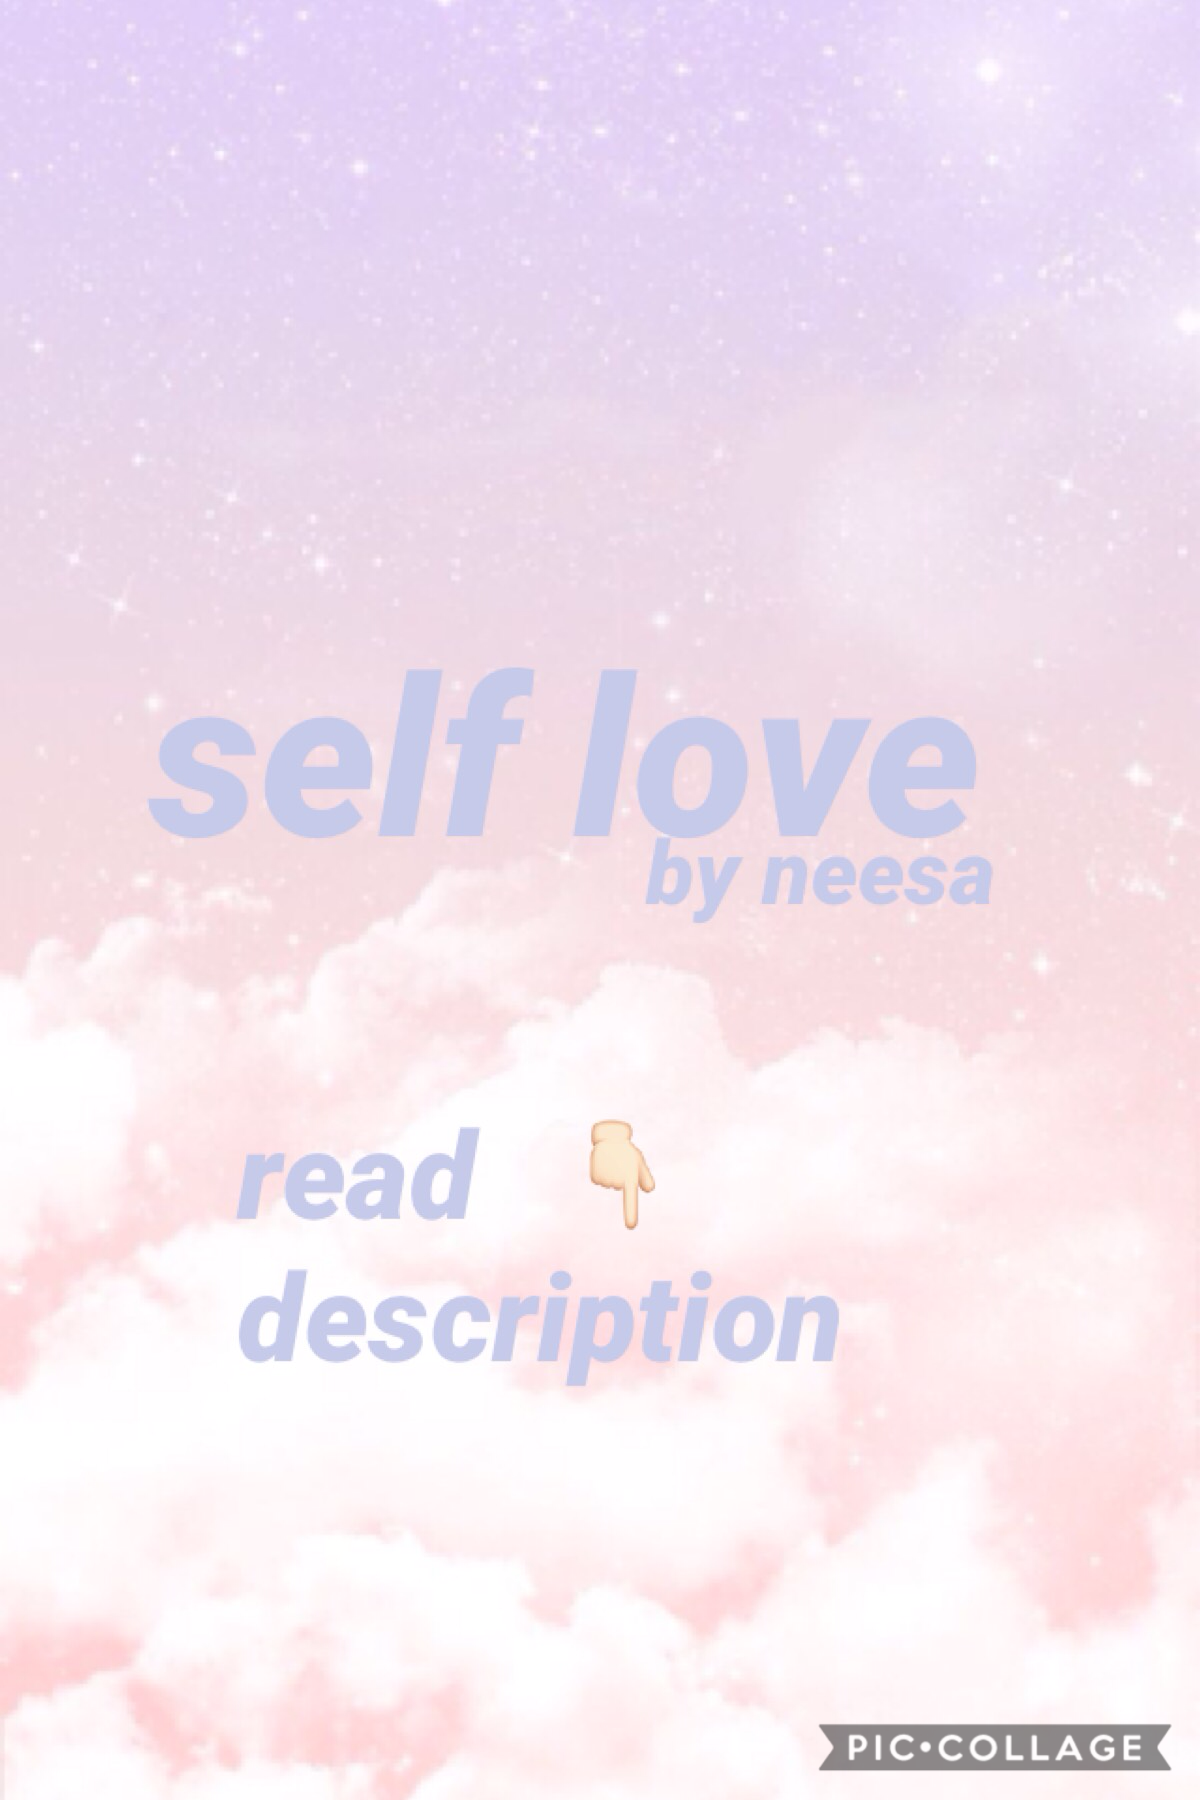 should I start a blog for self love? -neesa 💜